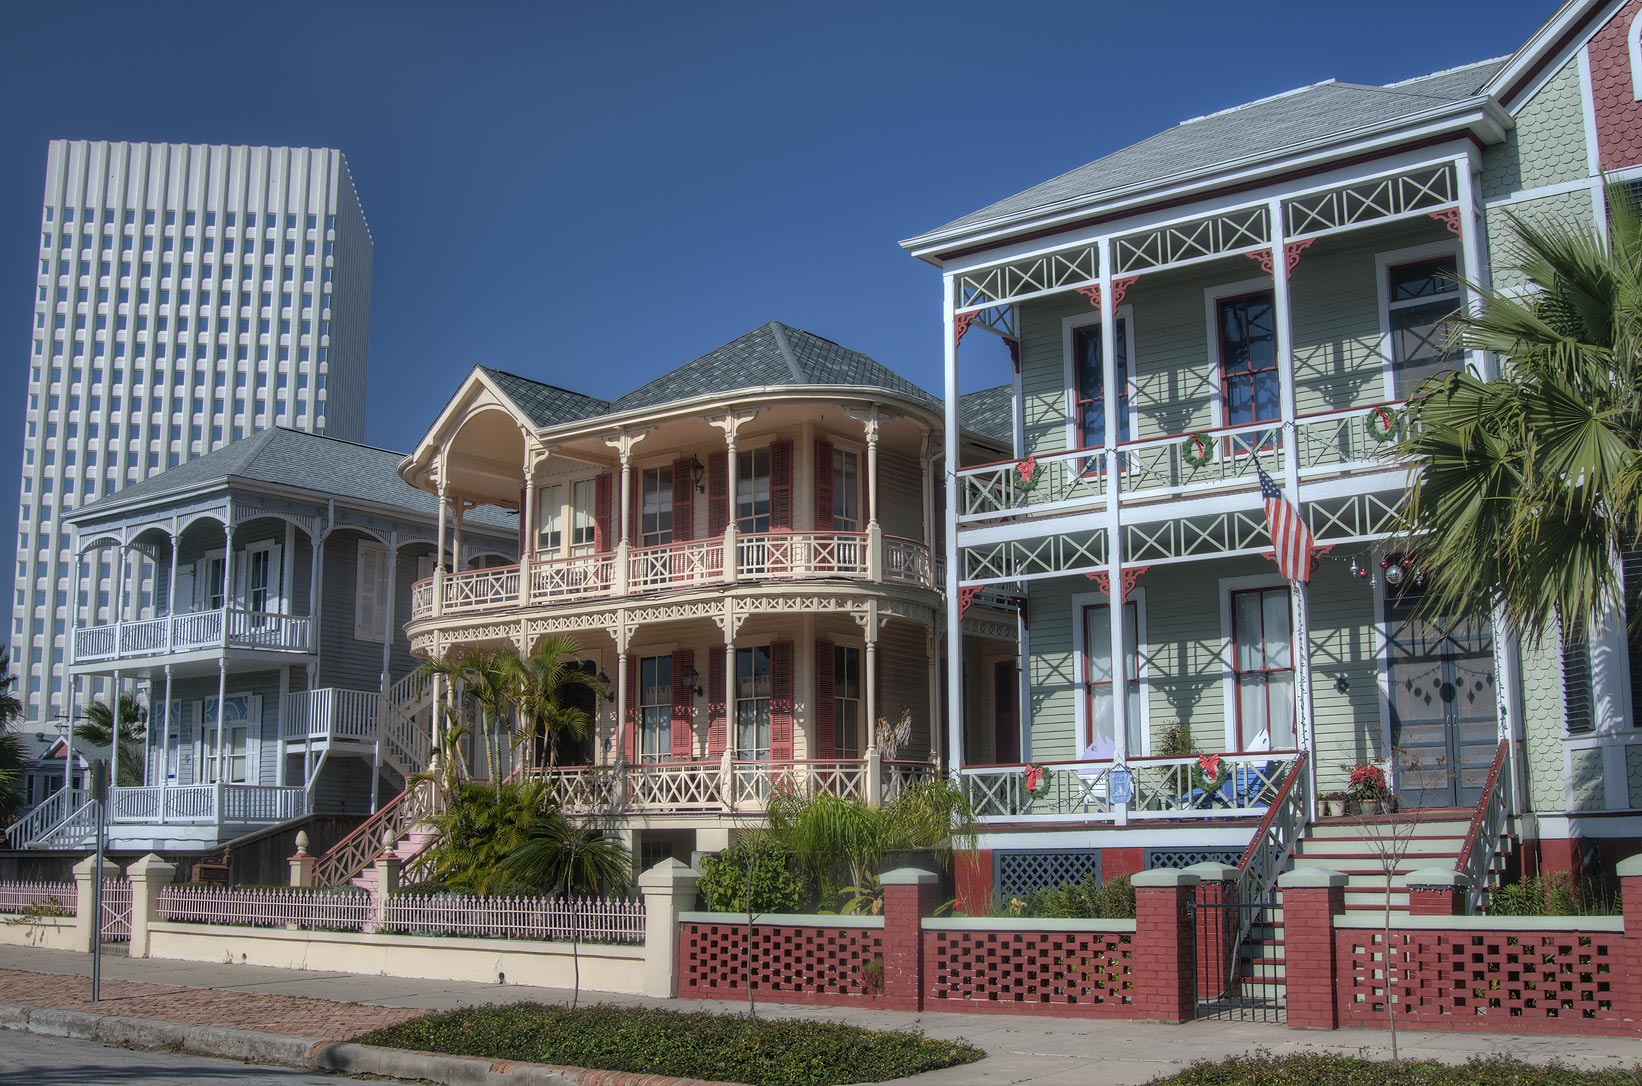 Postoffice St. in East End Historic District...Tower in foreground. Galveston, Texas